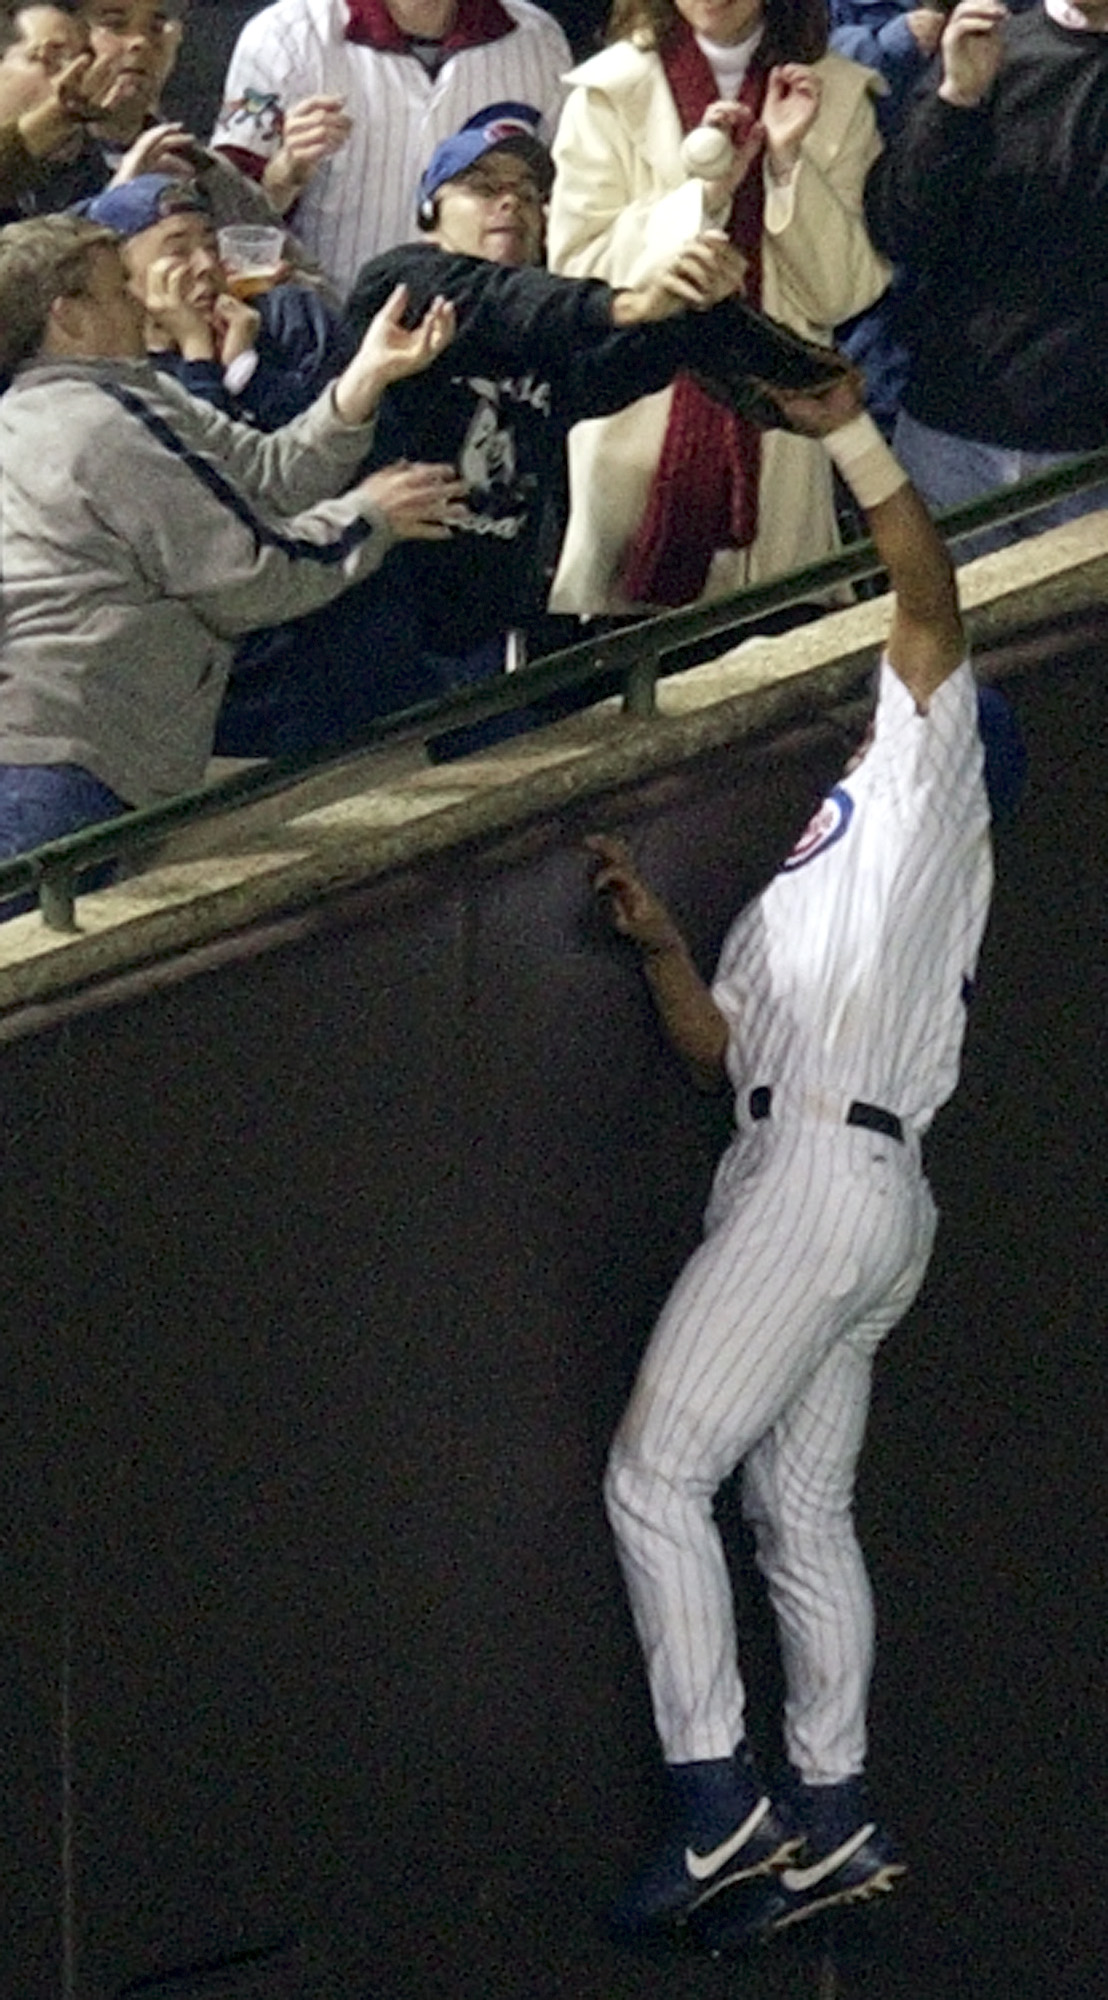 FILE - In this Oct. 14, 2003, file photo, Chicago Cubs left fielder Moises Alou reaches into the stands unsuccessfully for a foul ball, as Cubs fan Steve Bartman also reaches for the ball, during the eighth inning during Game 6 of the National League cham